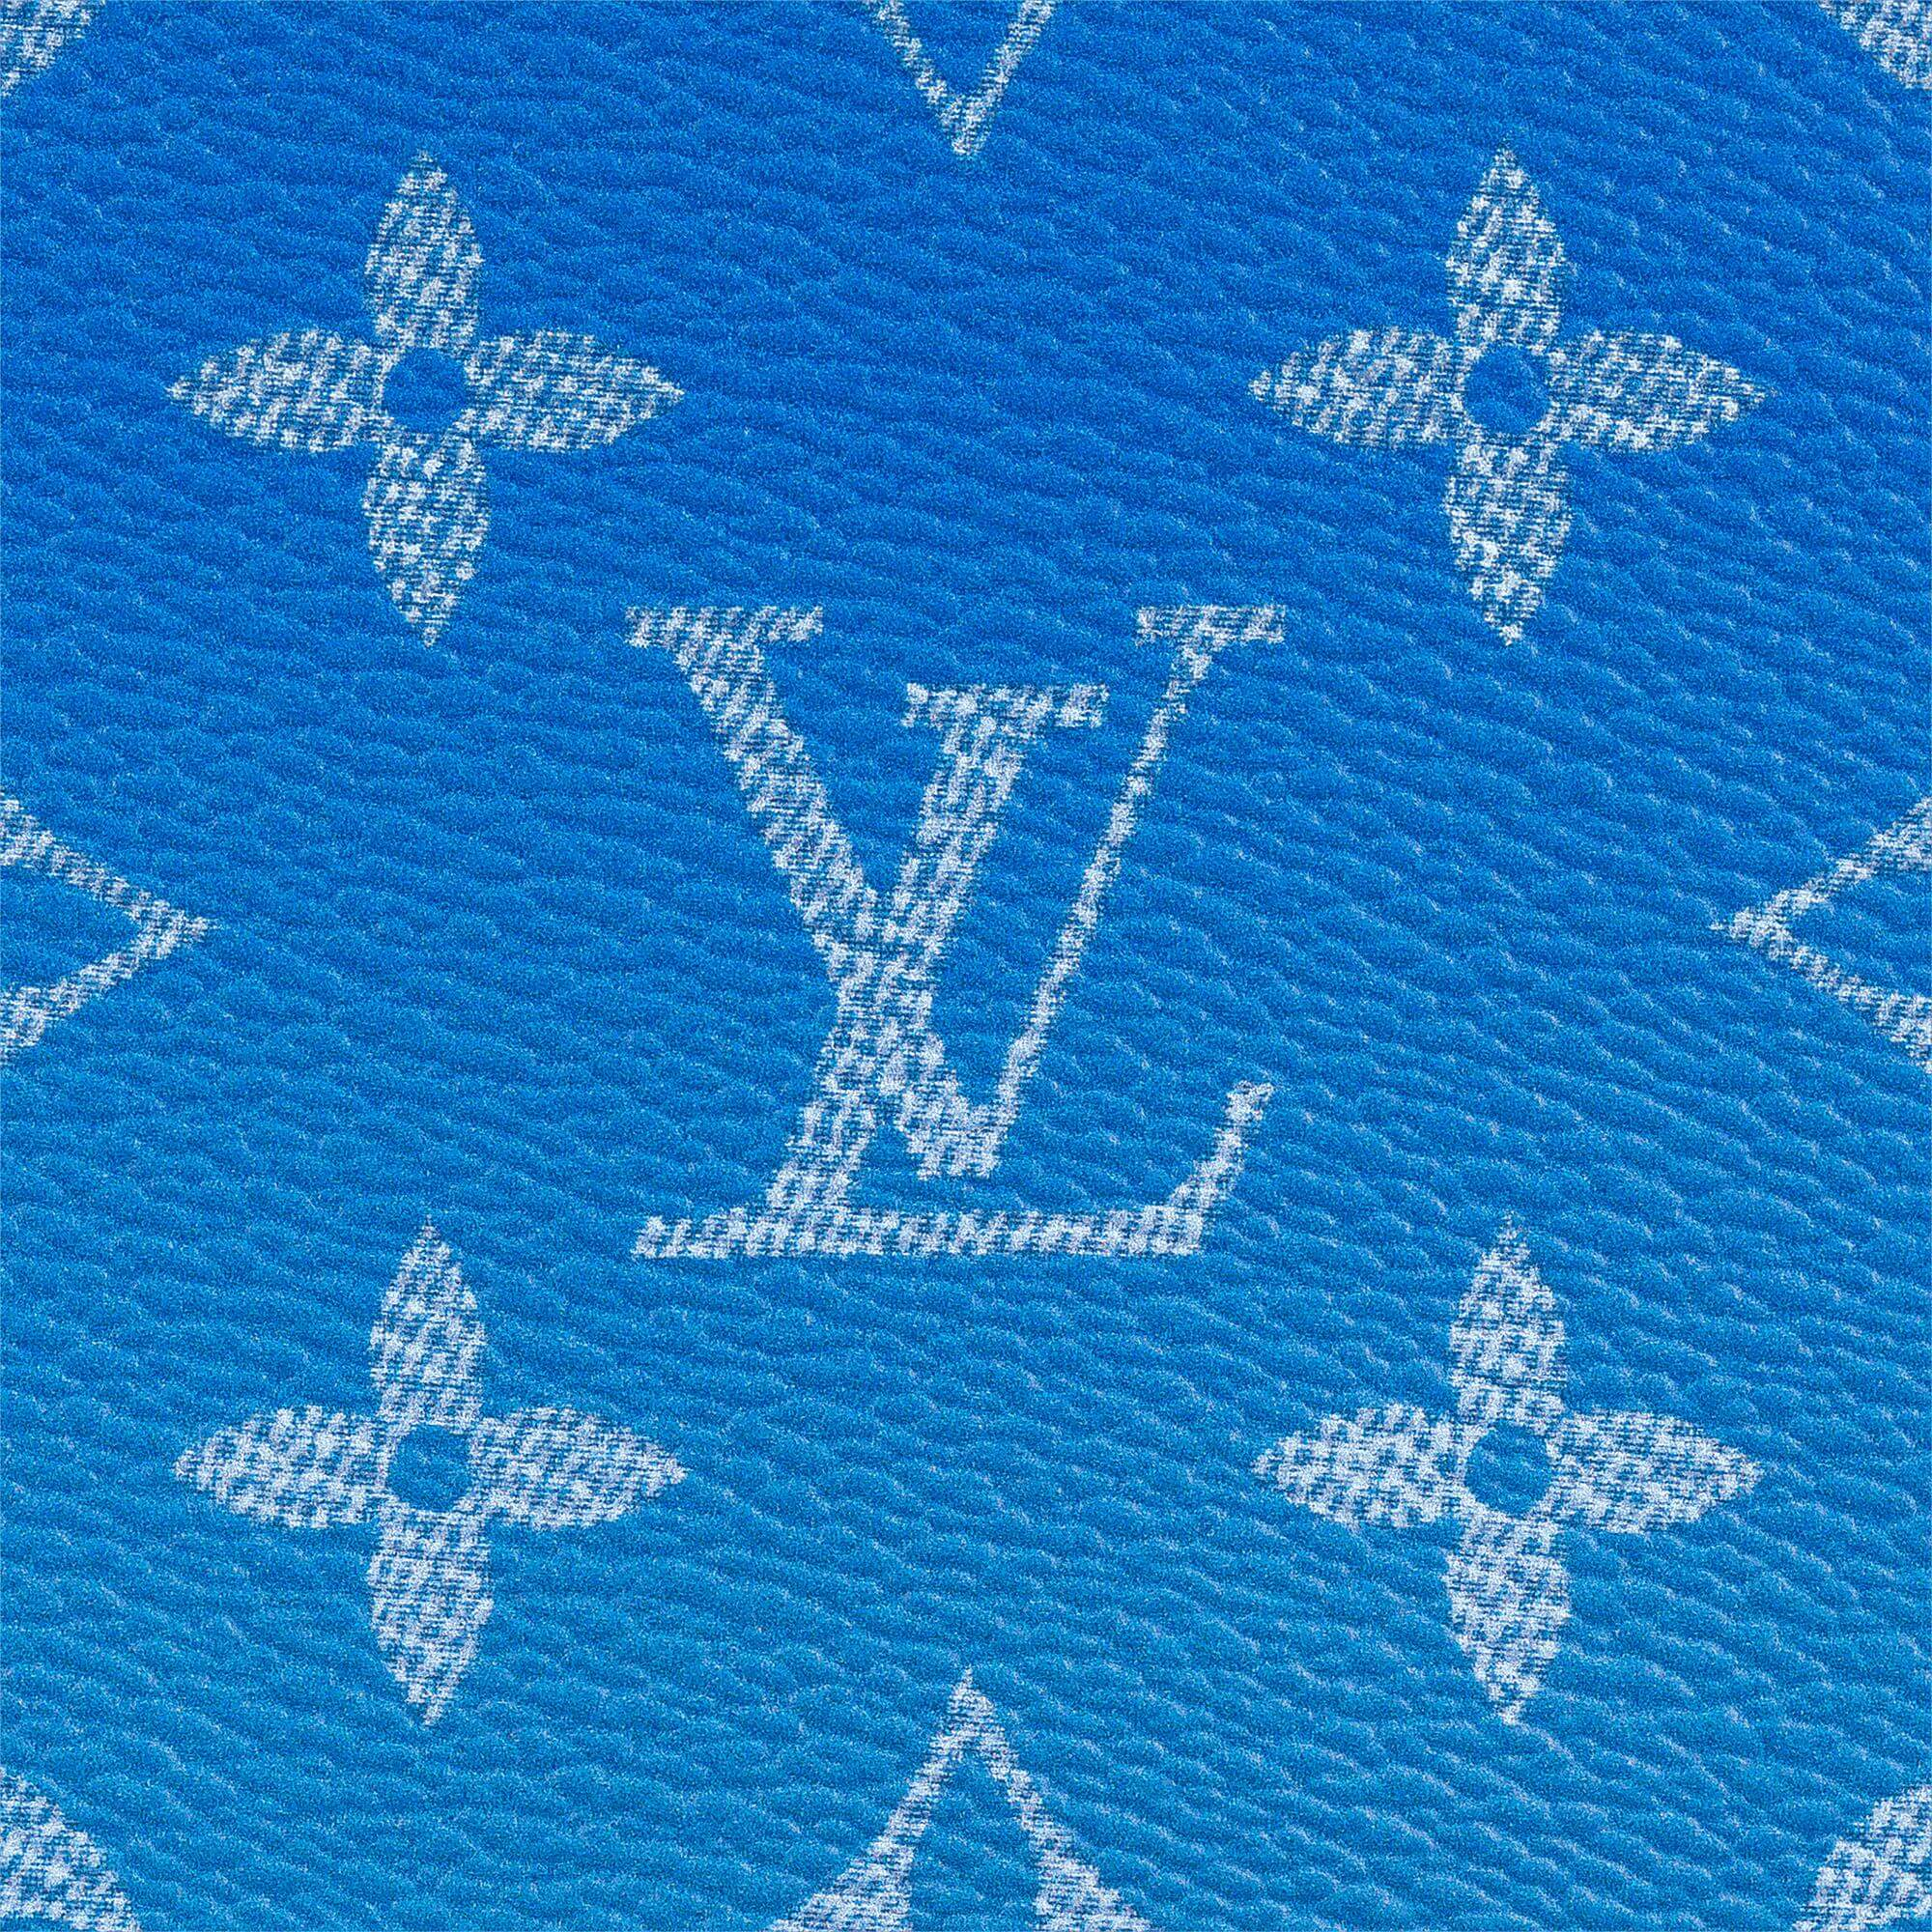 LV M45441 蓝天白云朵Backpack Multipocket双肩背包